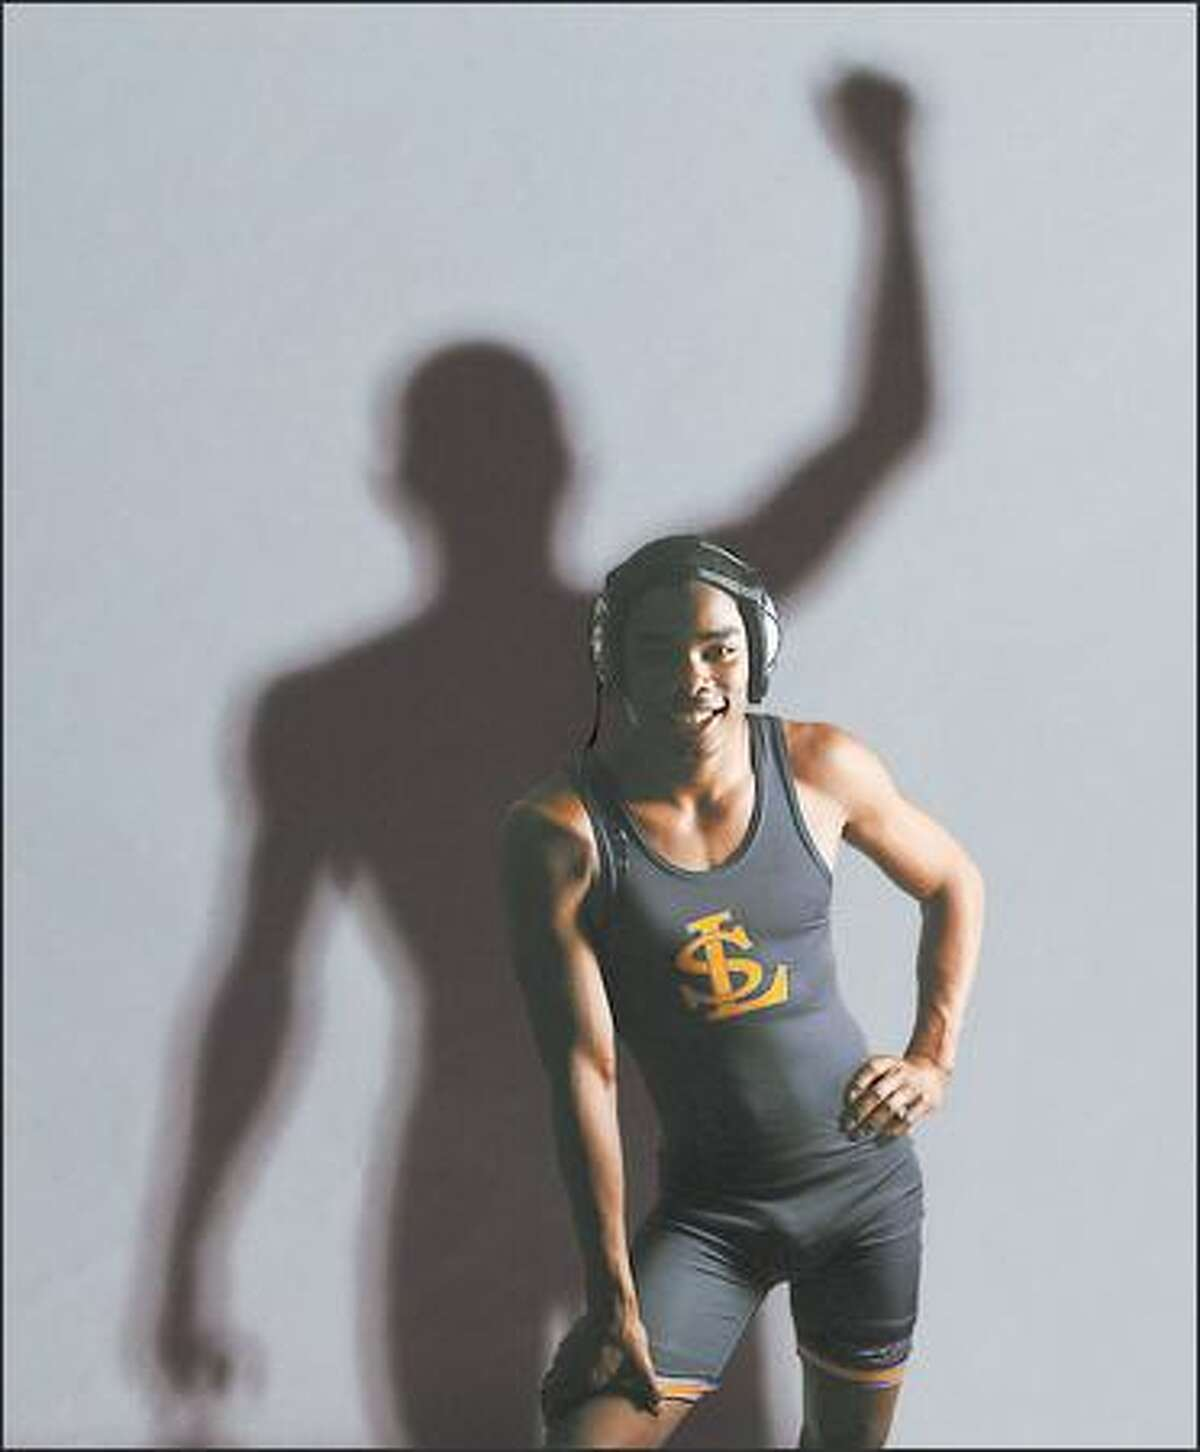 When Lake Stevens' Lester Brown was a freshman, he didn't want to turn out for wrestling. He became a two-time state champion. He's considering attending Boise State, but has also talked with Minnesota and Wyoming.